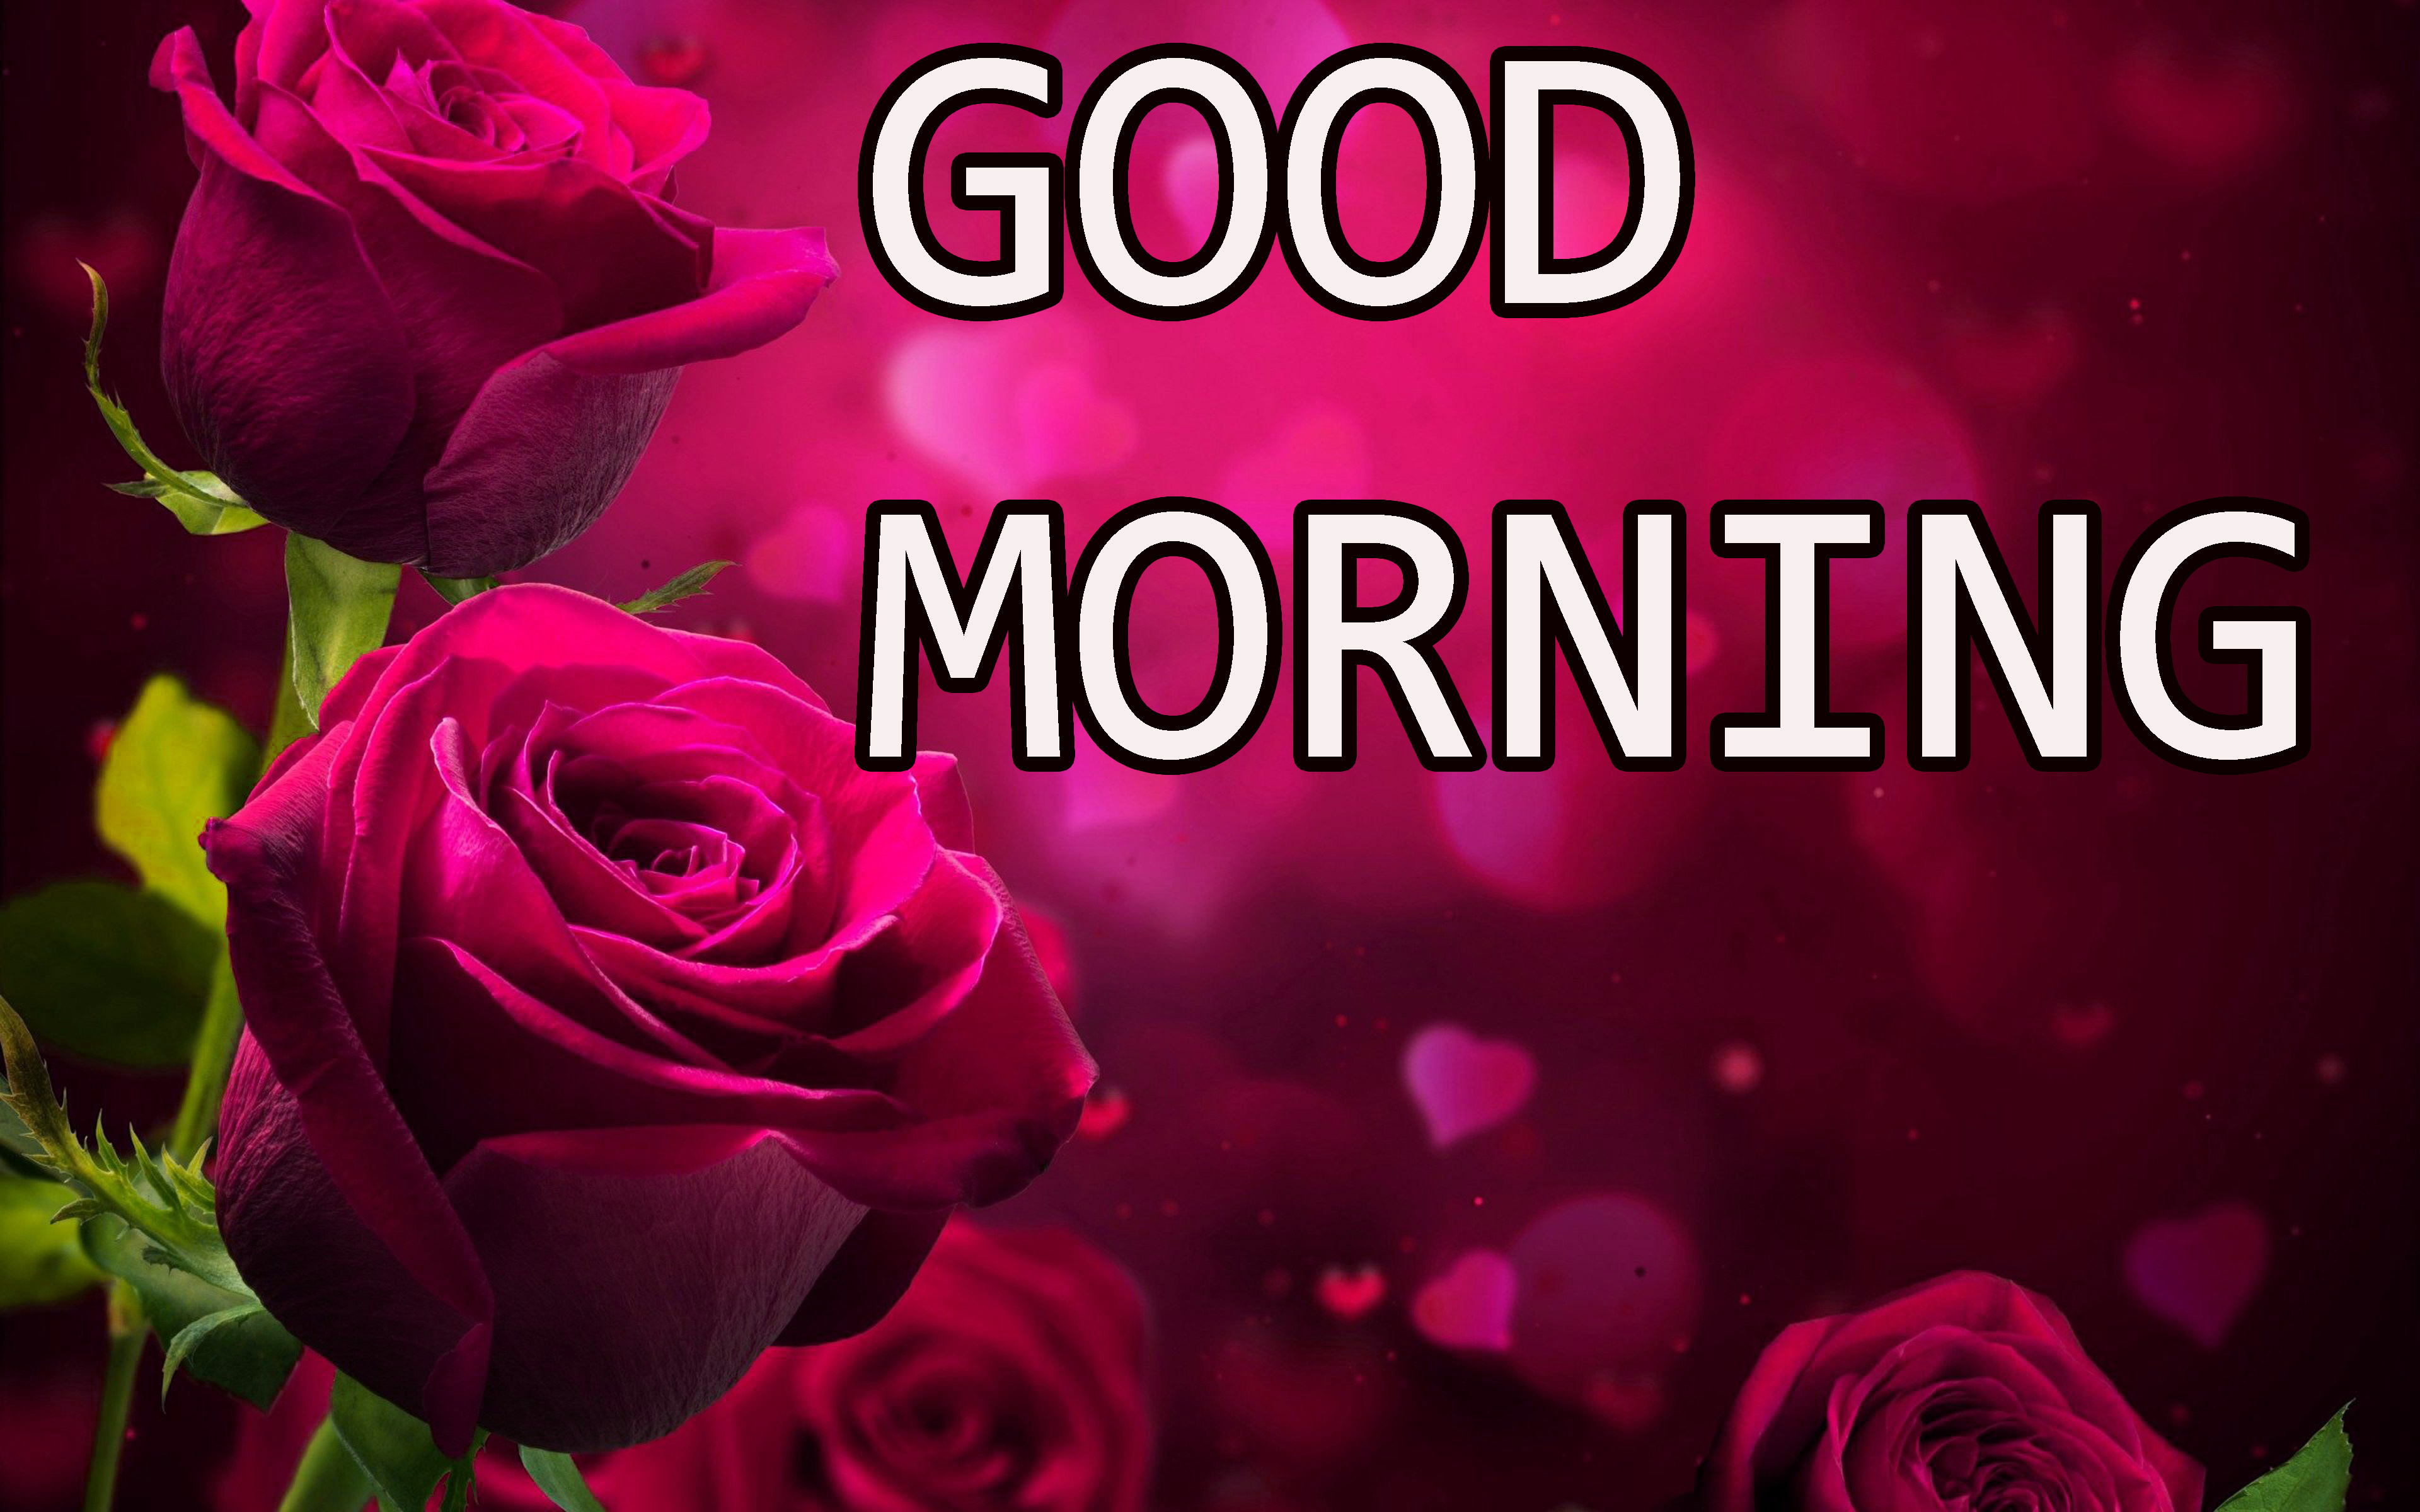 GOOD MORNING IMAGE PICS PHOTO HD